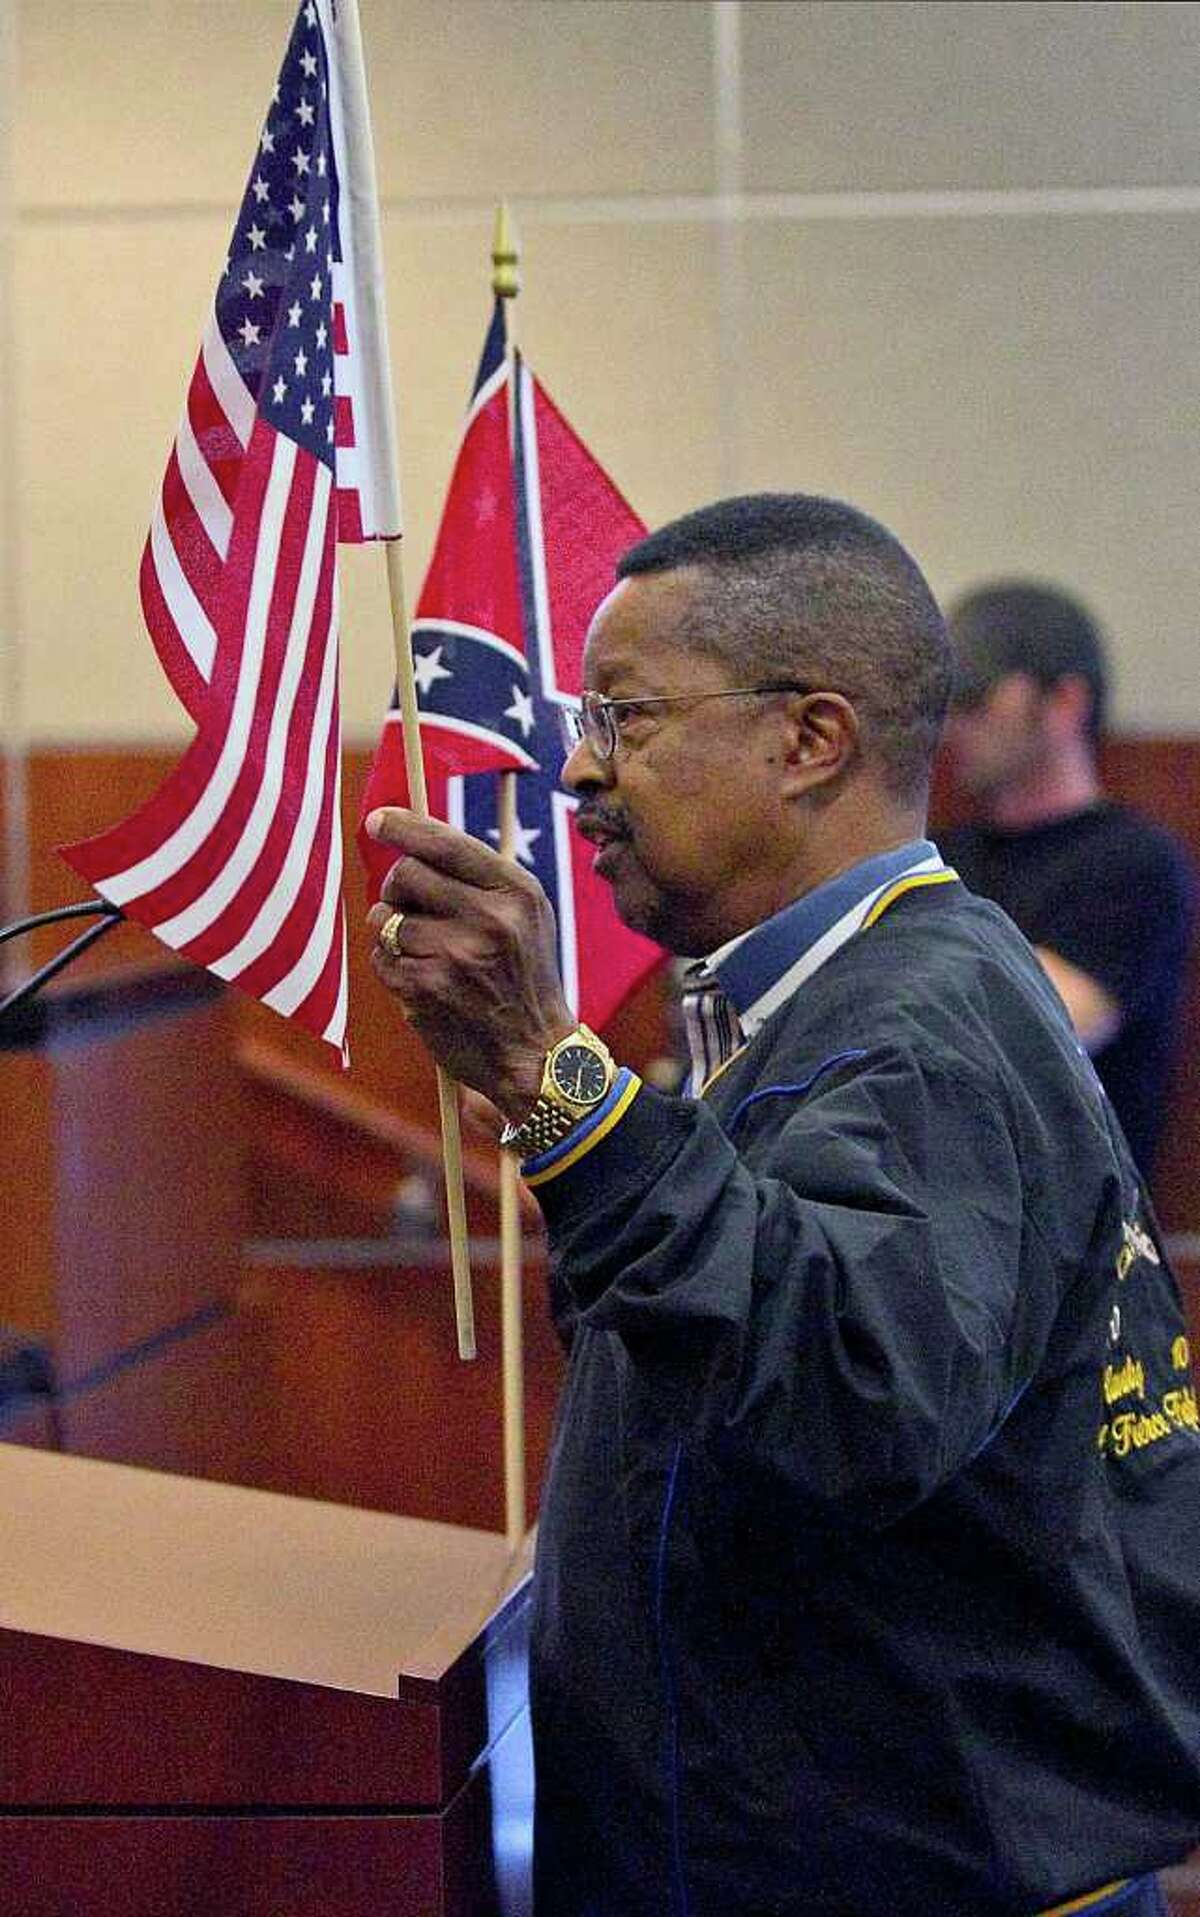 Captain Paul J. Matthews, Founder of the Buffalo Soldiers National Museum in Houston, appeared in Austin on Thursday, Nov. 10, as the board discussed the Confederate plates.